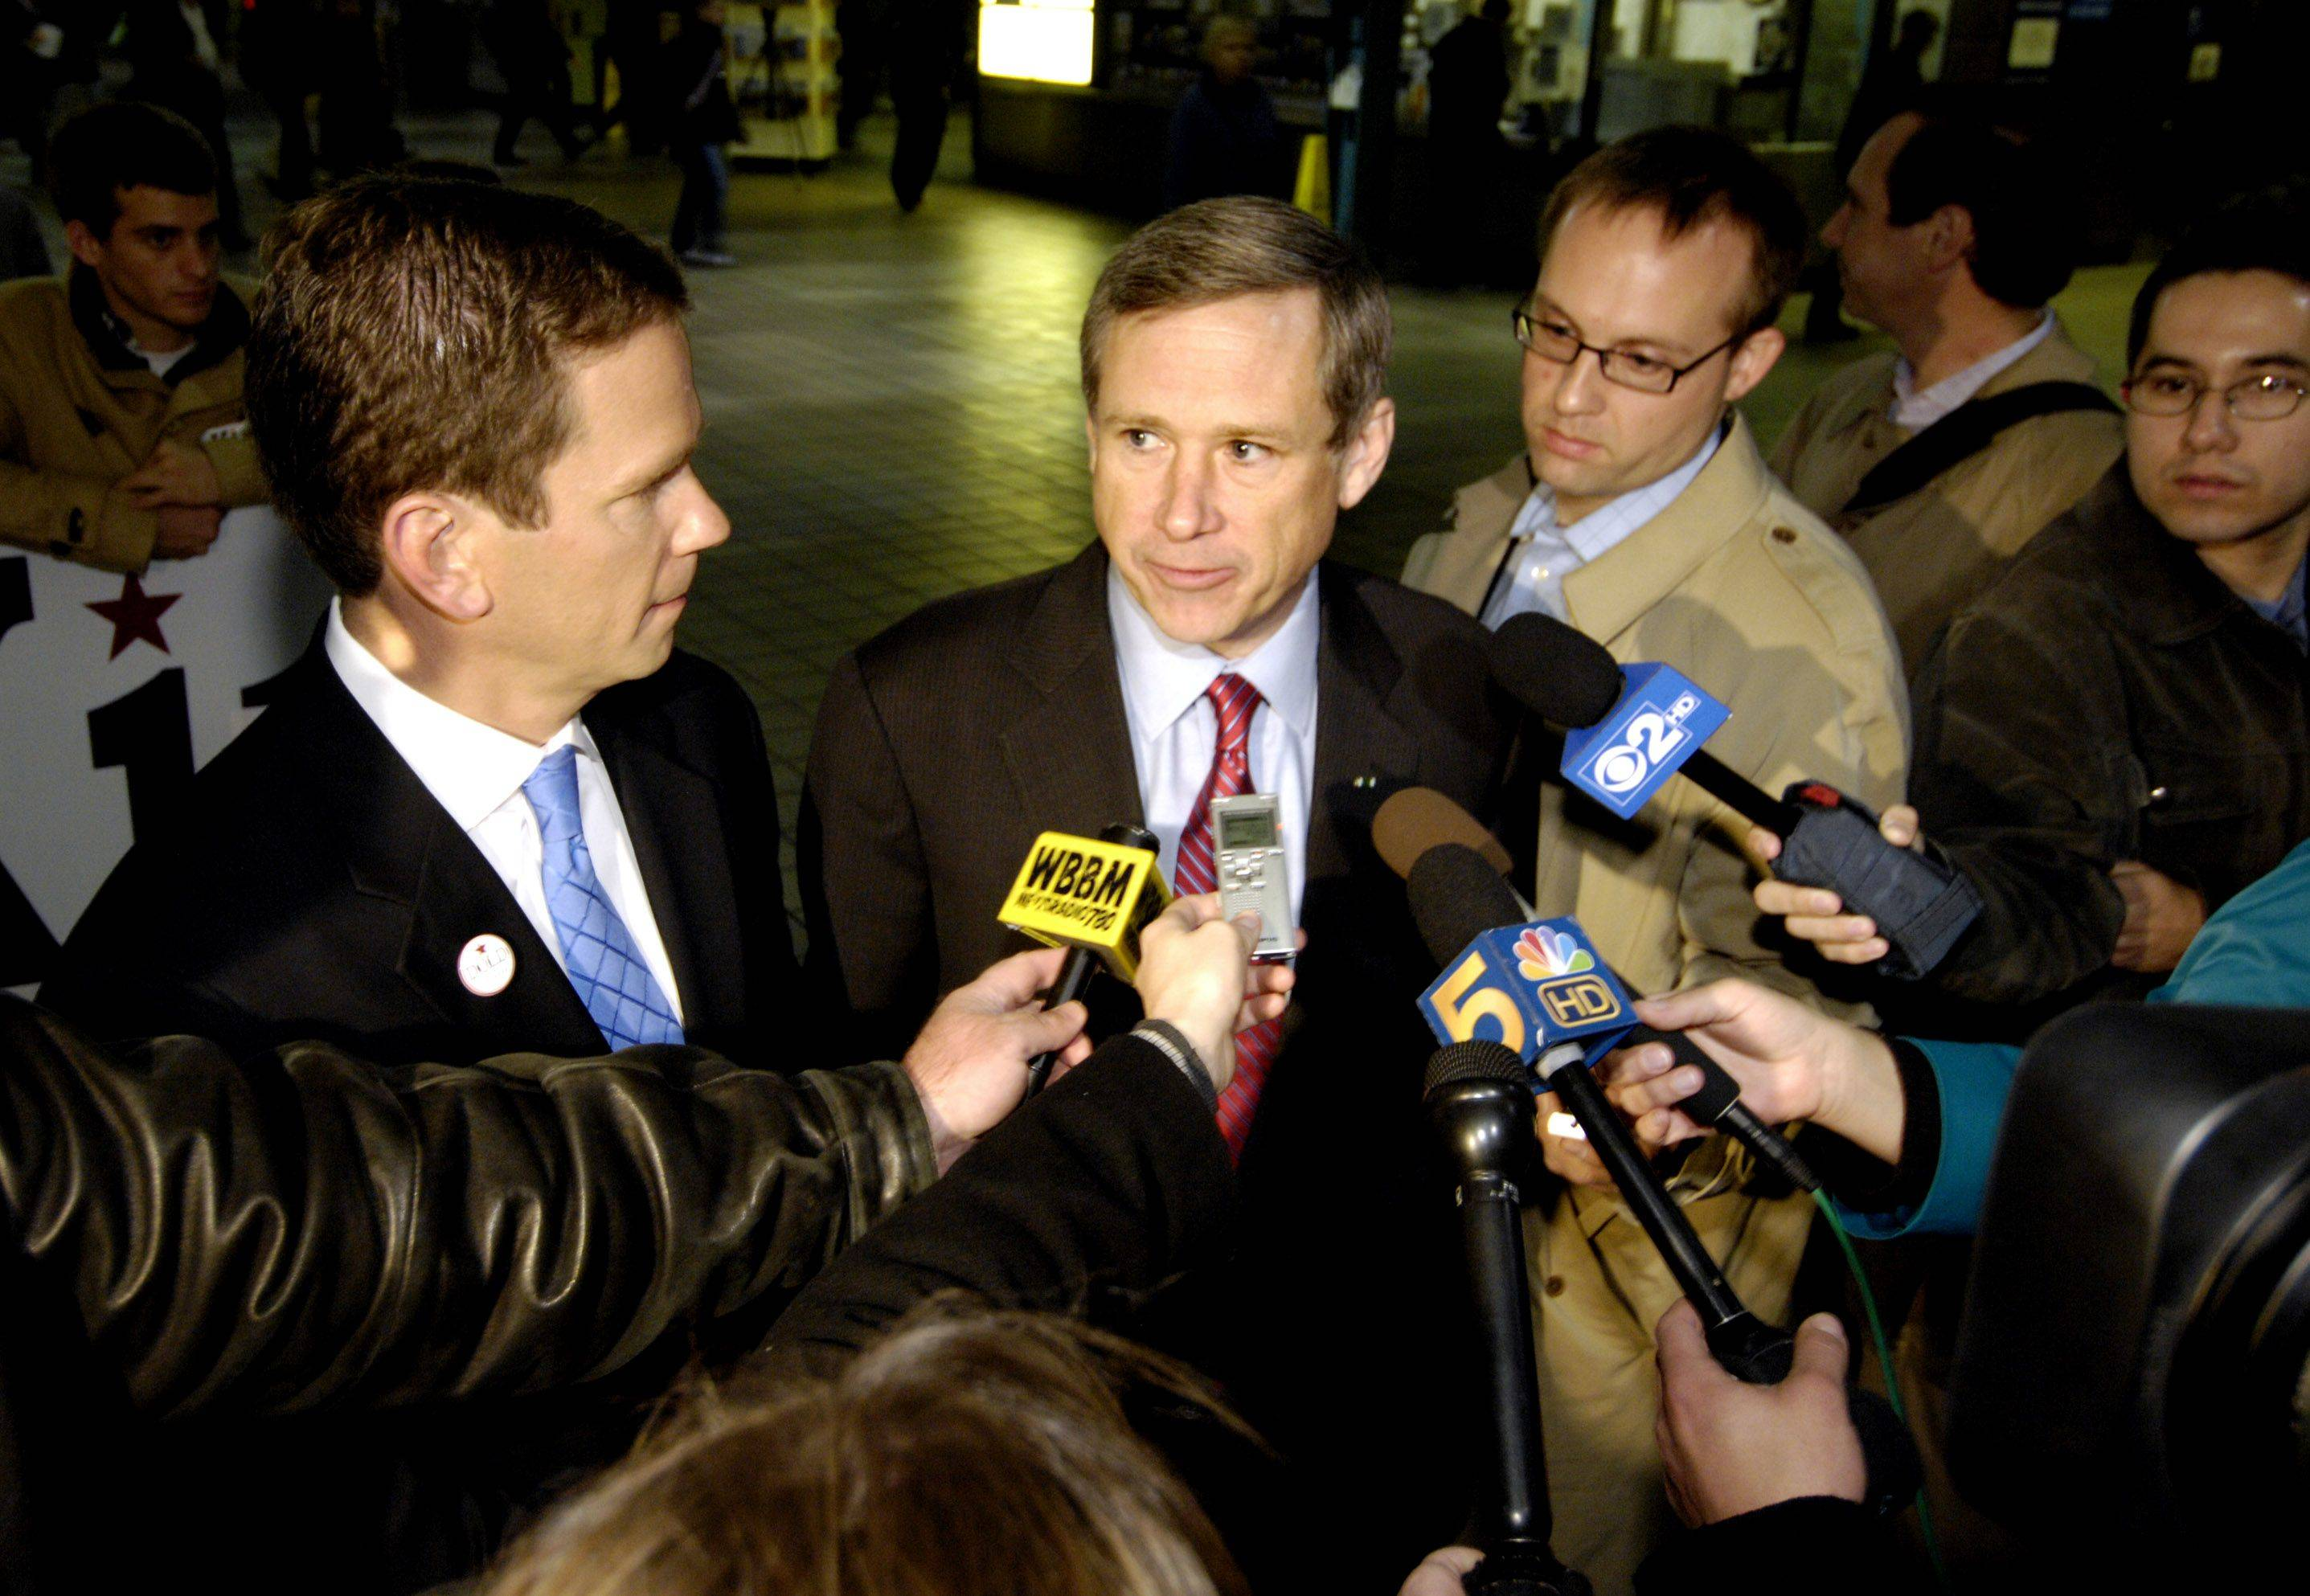 Congressman-elect Robert Dold and Illinois Senator-elect Mark Kirk talk to the media before greeting commuters at the Ogilvie Transportation Center in Chicago.